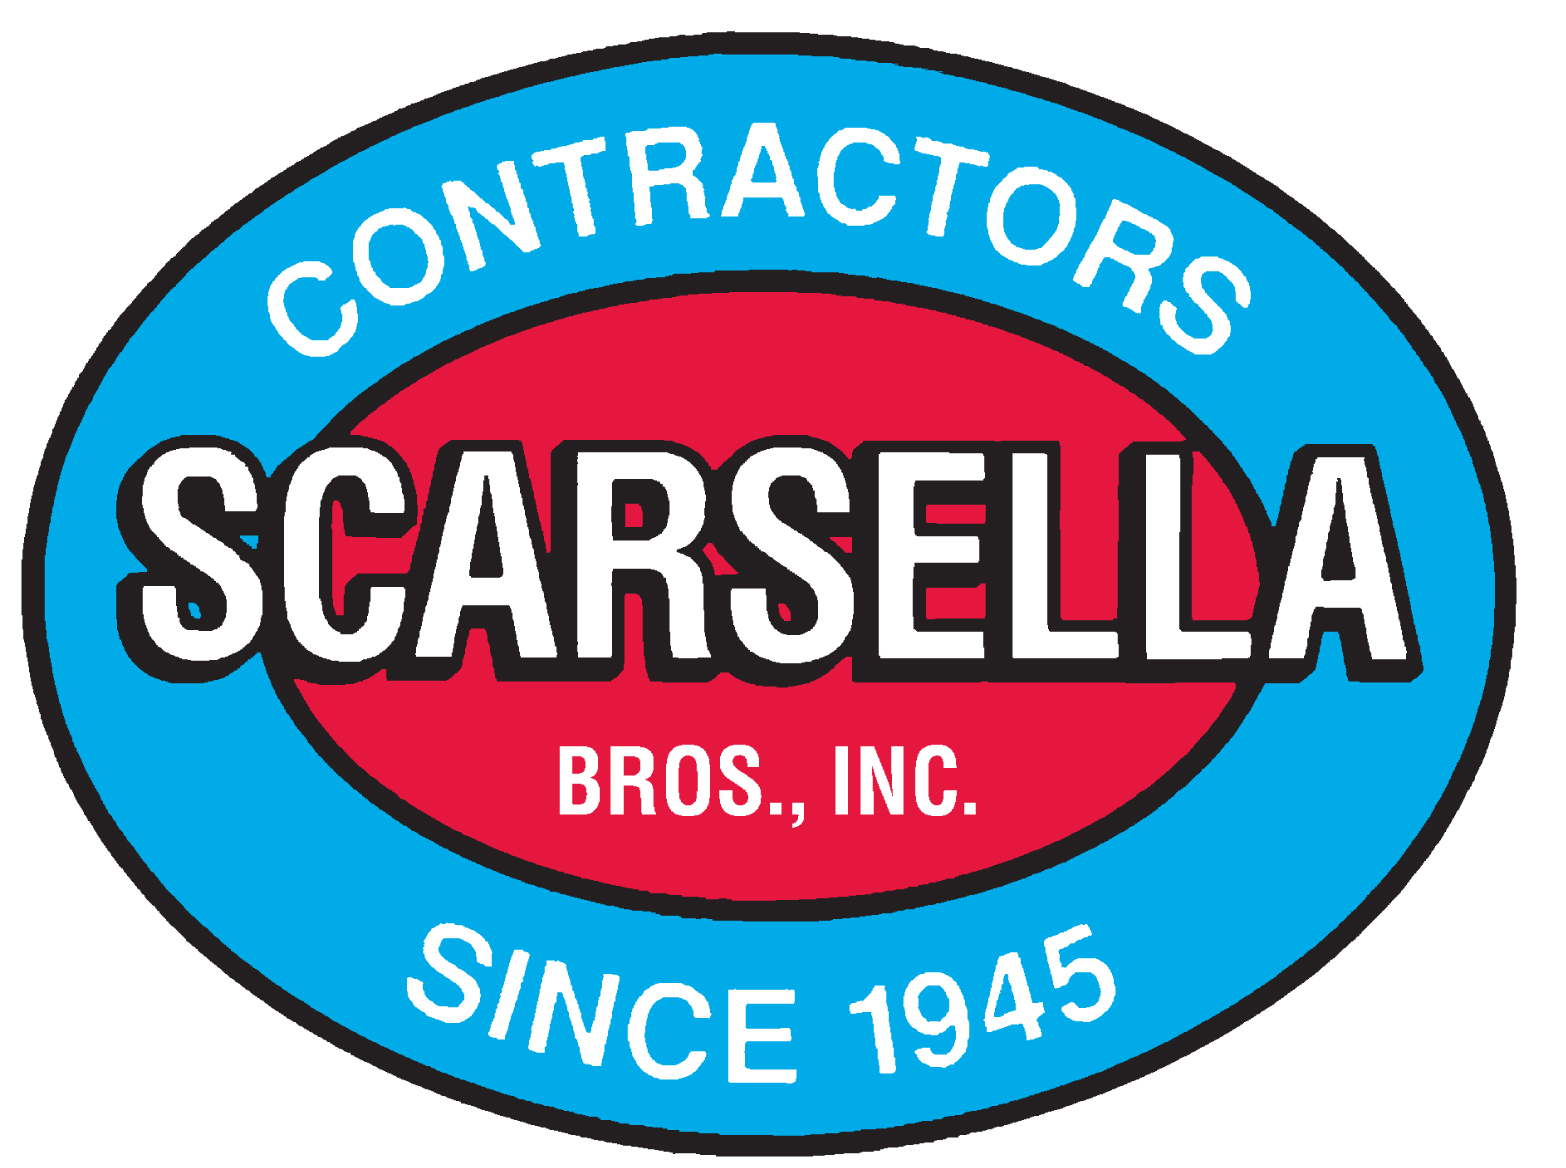 scarsella bros logo